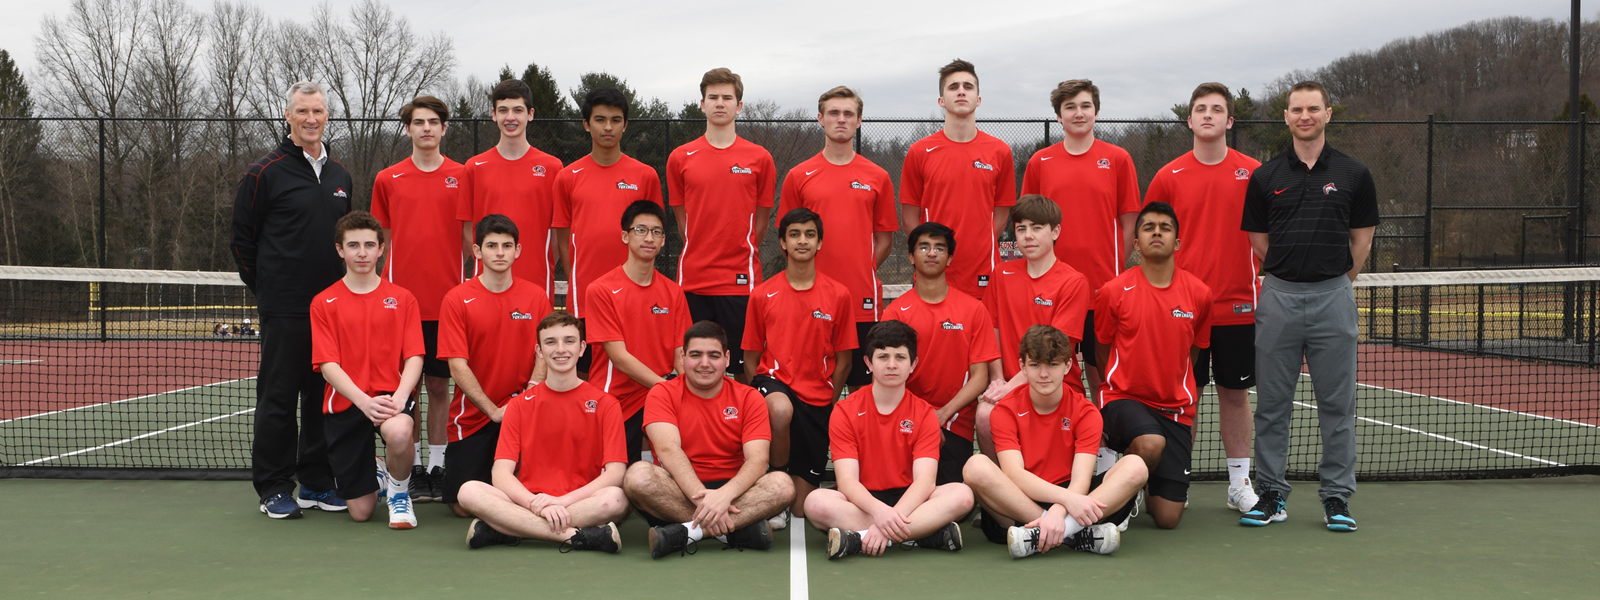 Boys' tennis team